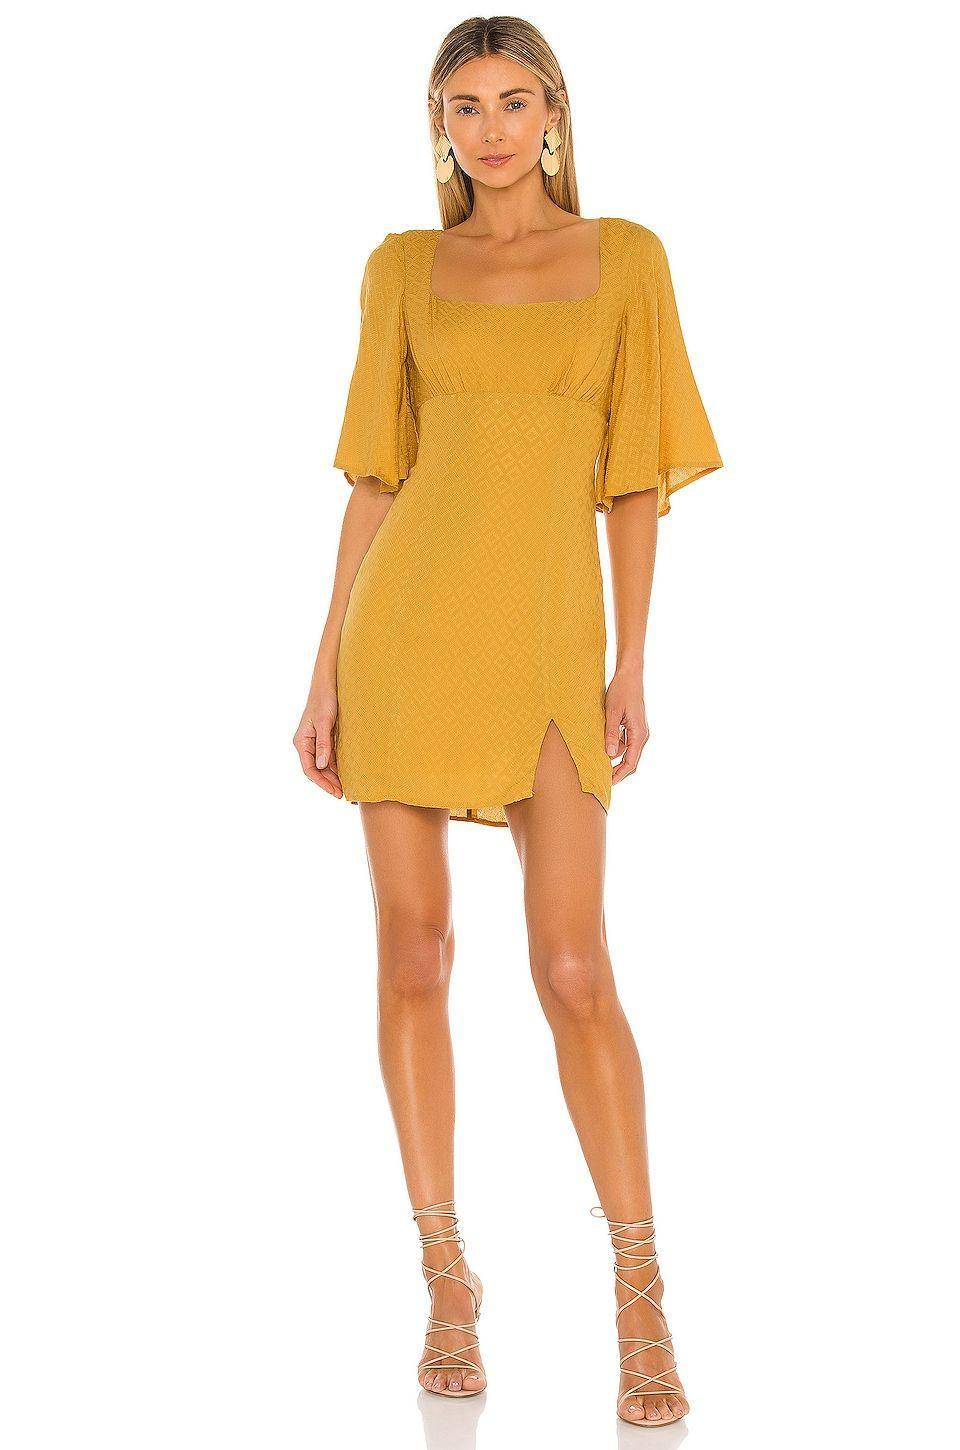 """<p><strong>House of Harlow 1960</strong></p><p>revolve.com</p><p><strong>$188.00</strong></p><p><a href=""""https://go.redirectingat.com?id=74968X1596630&url=https%3A%2F%2Fwww.revolve.com%2Fdp%2FHOOF-WD730%2F&sref=https%3A%2F%2Fwww.womenshealthmag.com%2Flife%2Fg36173394%2Fsummer-wedding-guest-dresses%2F"""" rel=""""nofollow noopener"""" target=""""_blank"""" data-ylk=""""slk:Shop Now"""" class=""""link rapid-noclick-resp"""">Shop Now</a></p><p>The keyhole back and flowing sleeves are the perfect small details to elevate an otherwise classic fit dress. The mustard color is ideal for summer, too. </p>"""